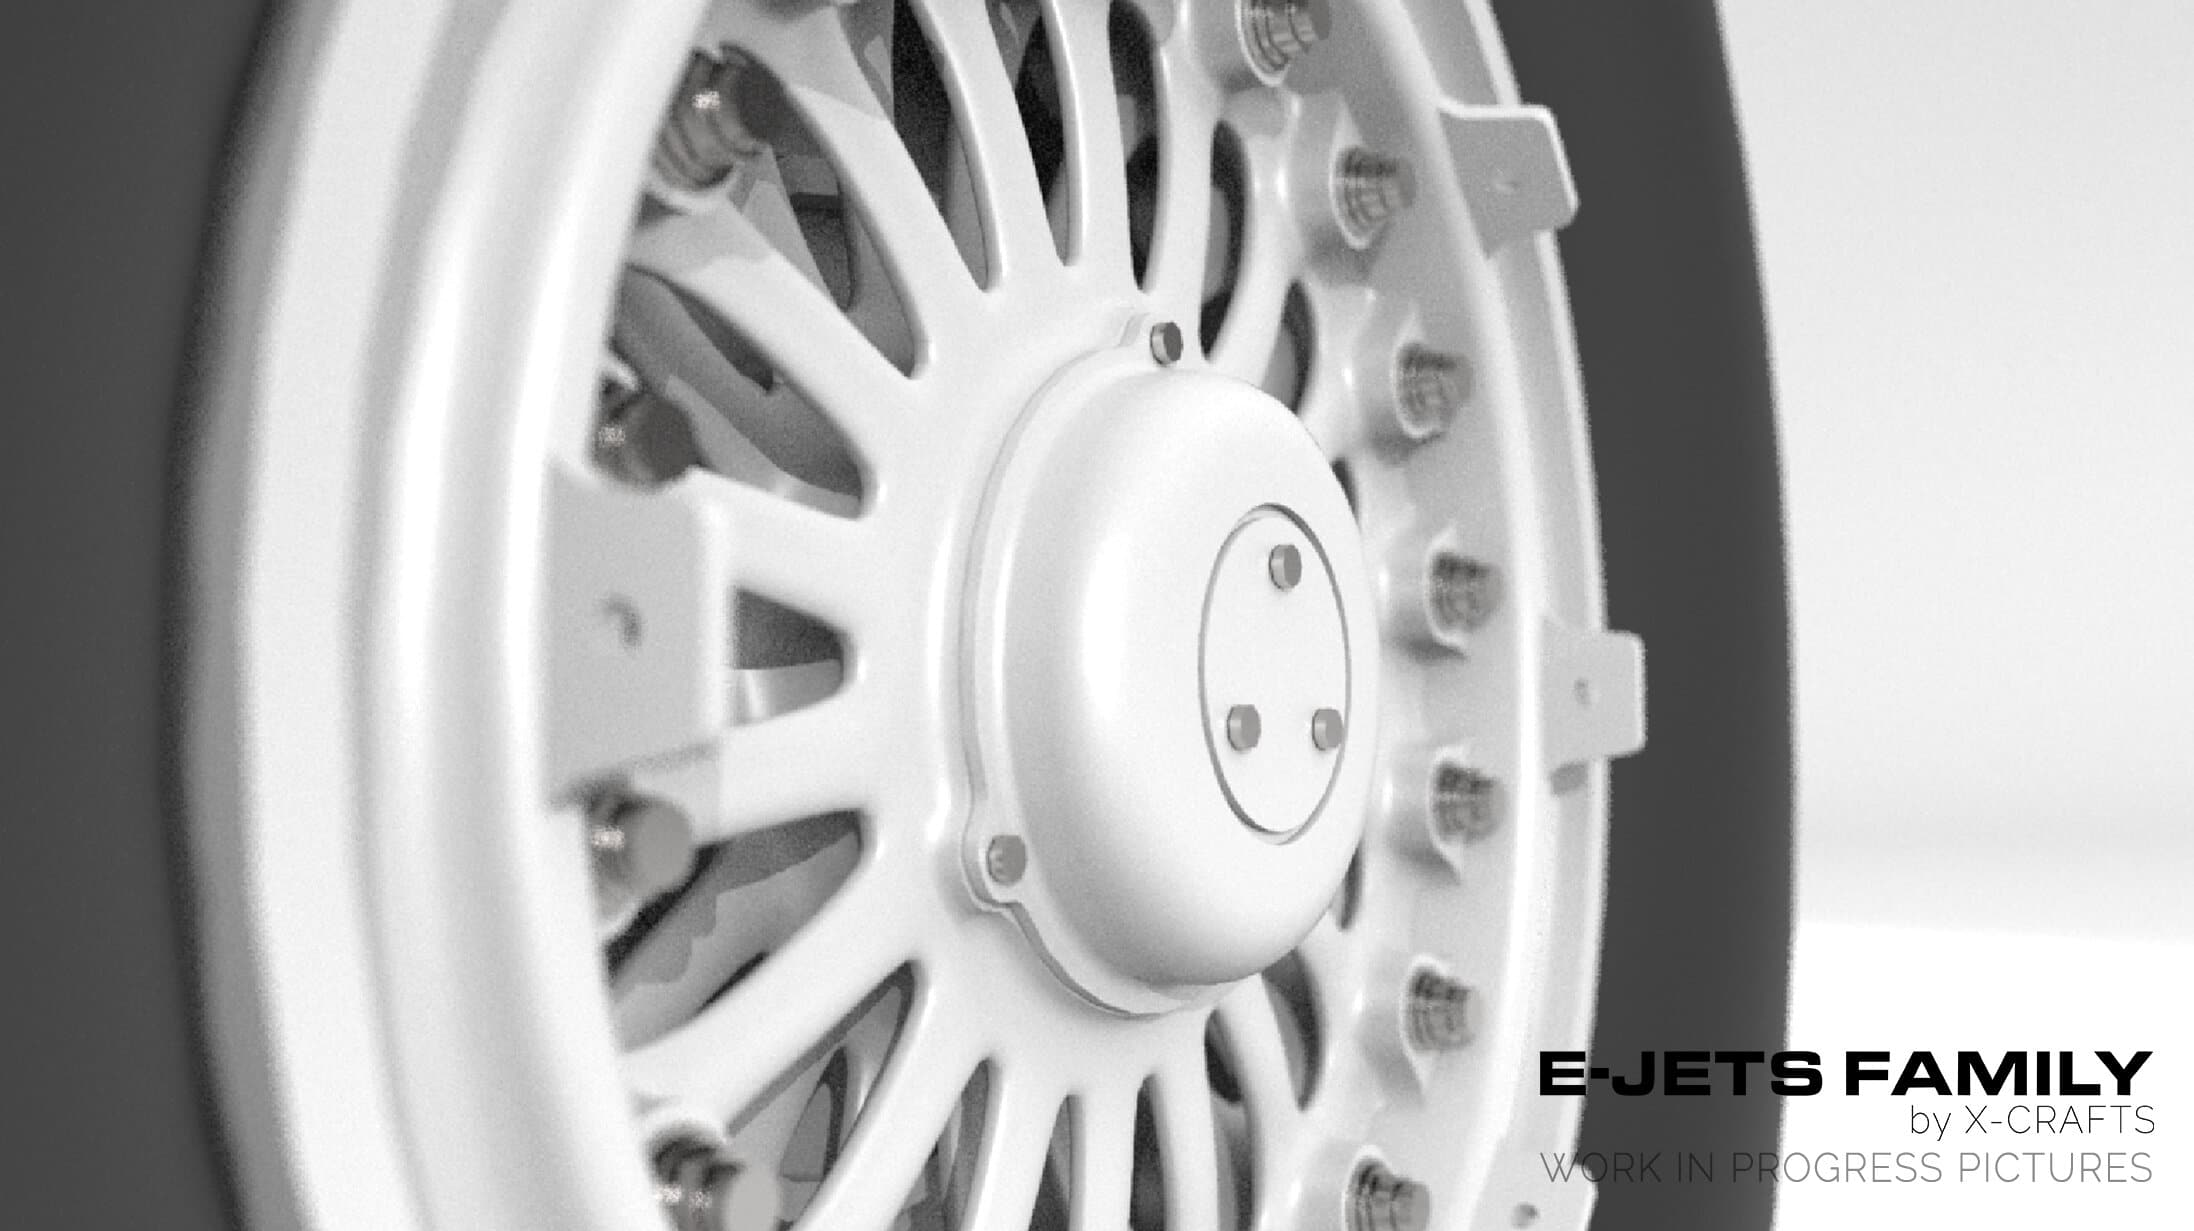 E-JETS_FAMILY_X-CRAFTS_PREVIEW_GEAR_3